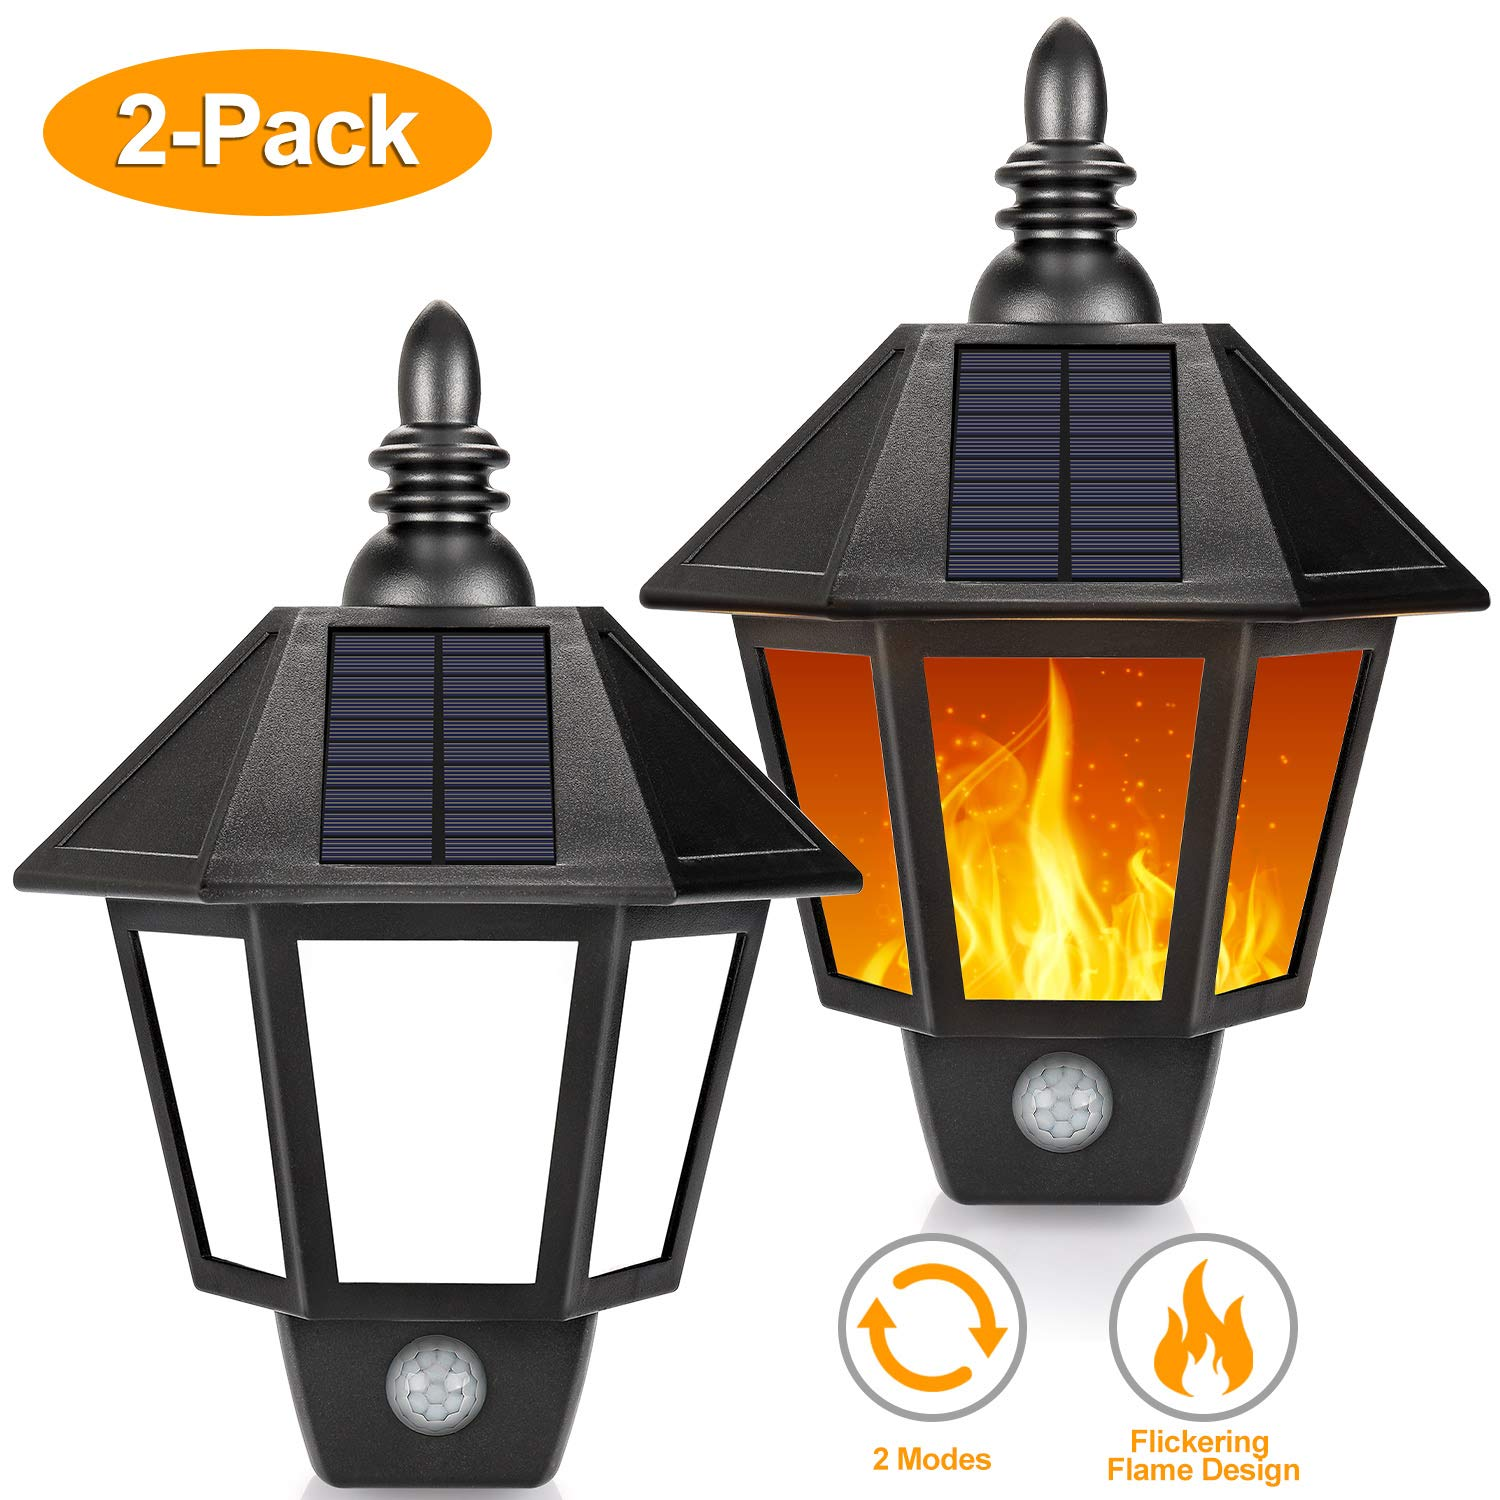 Solar Wall Lights Outdoor Motion Sensor, 2 in 1 Sconce Decorative Solar Lights with Flickering Flame Design, Wireless Waterproof Flame Solar Lights for Garden, Patio, Garage, AA Battery Included